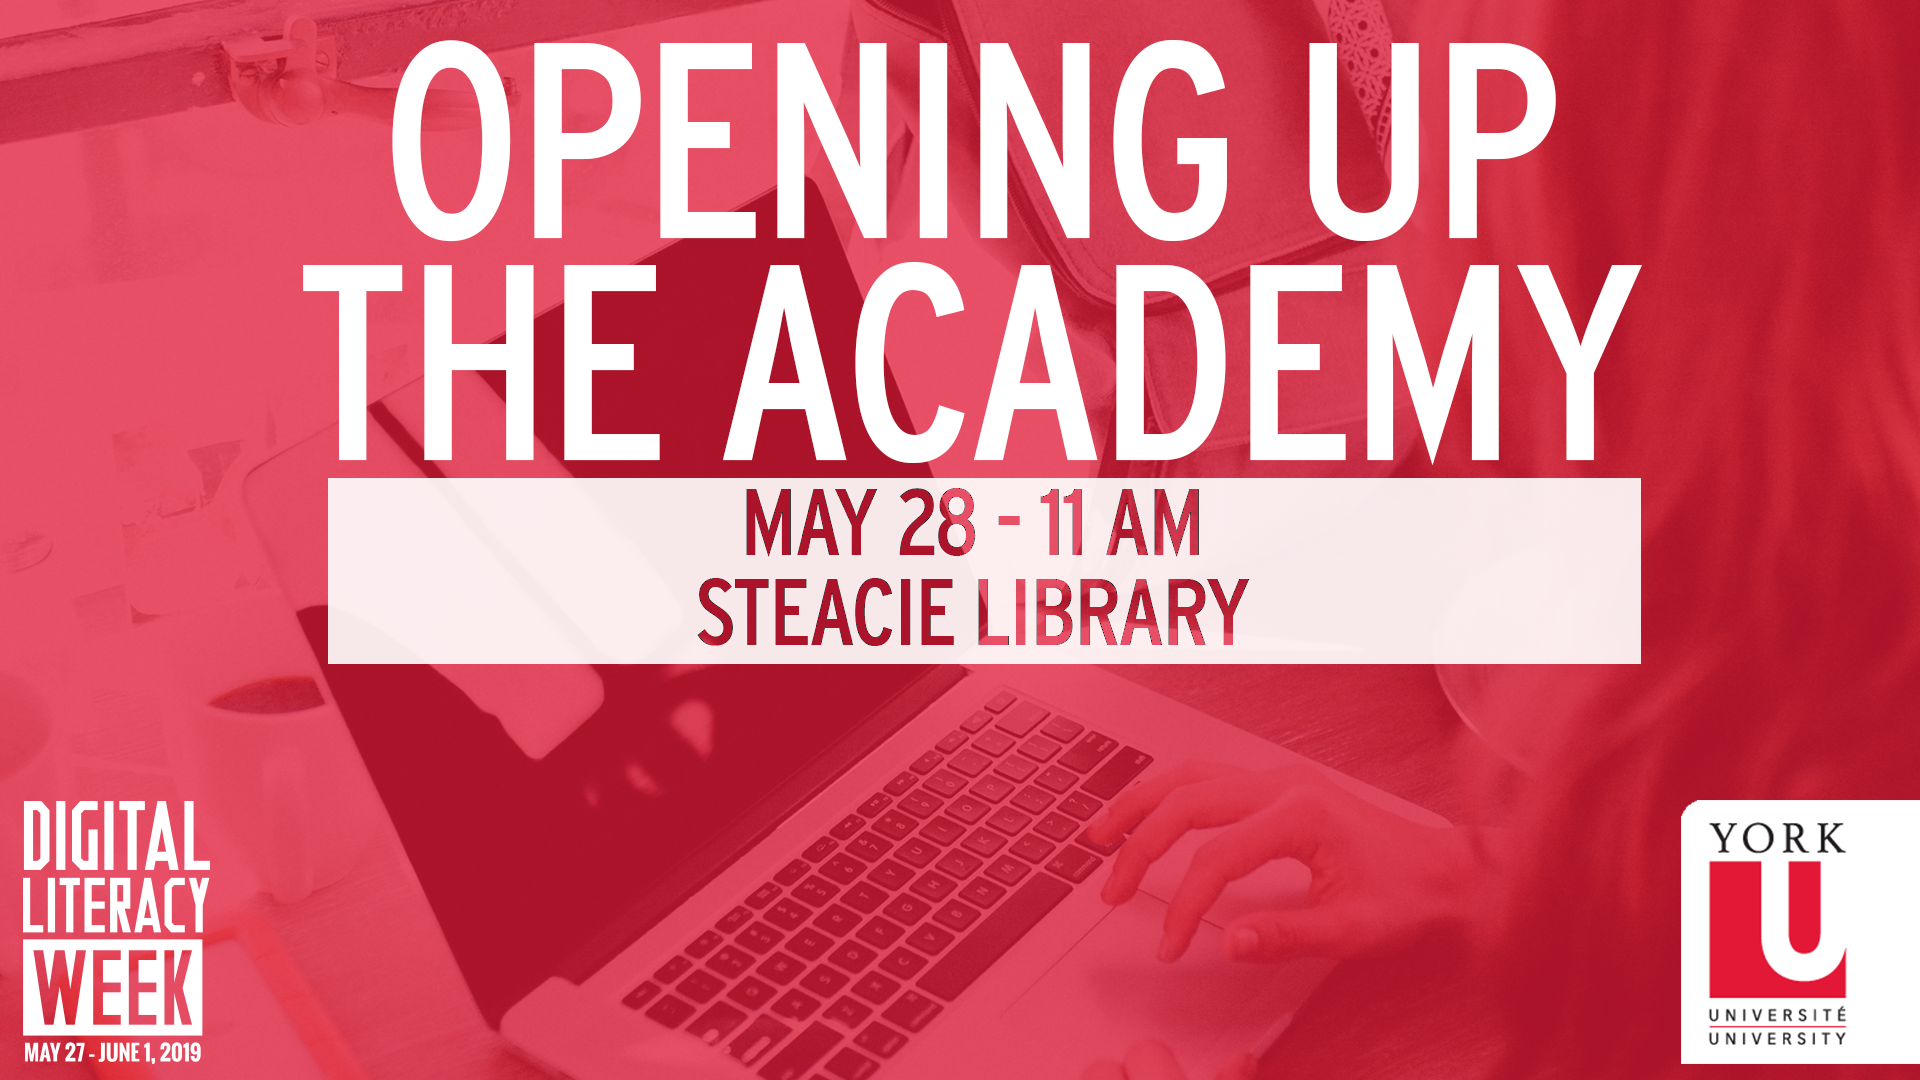 Red graphic promoting a Digital Literacy Week event titled: Opening Up The Academy